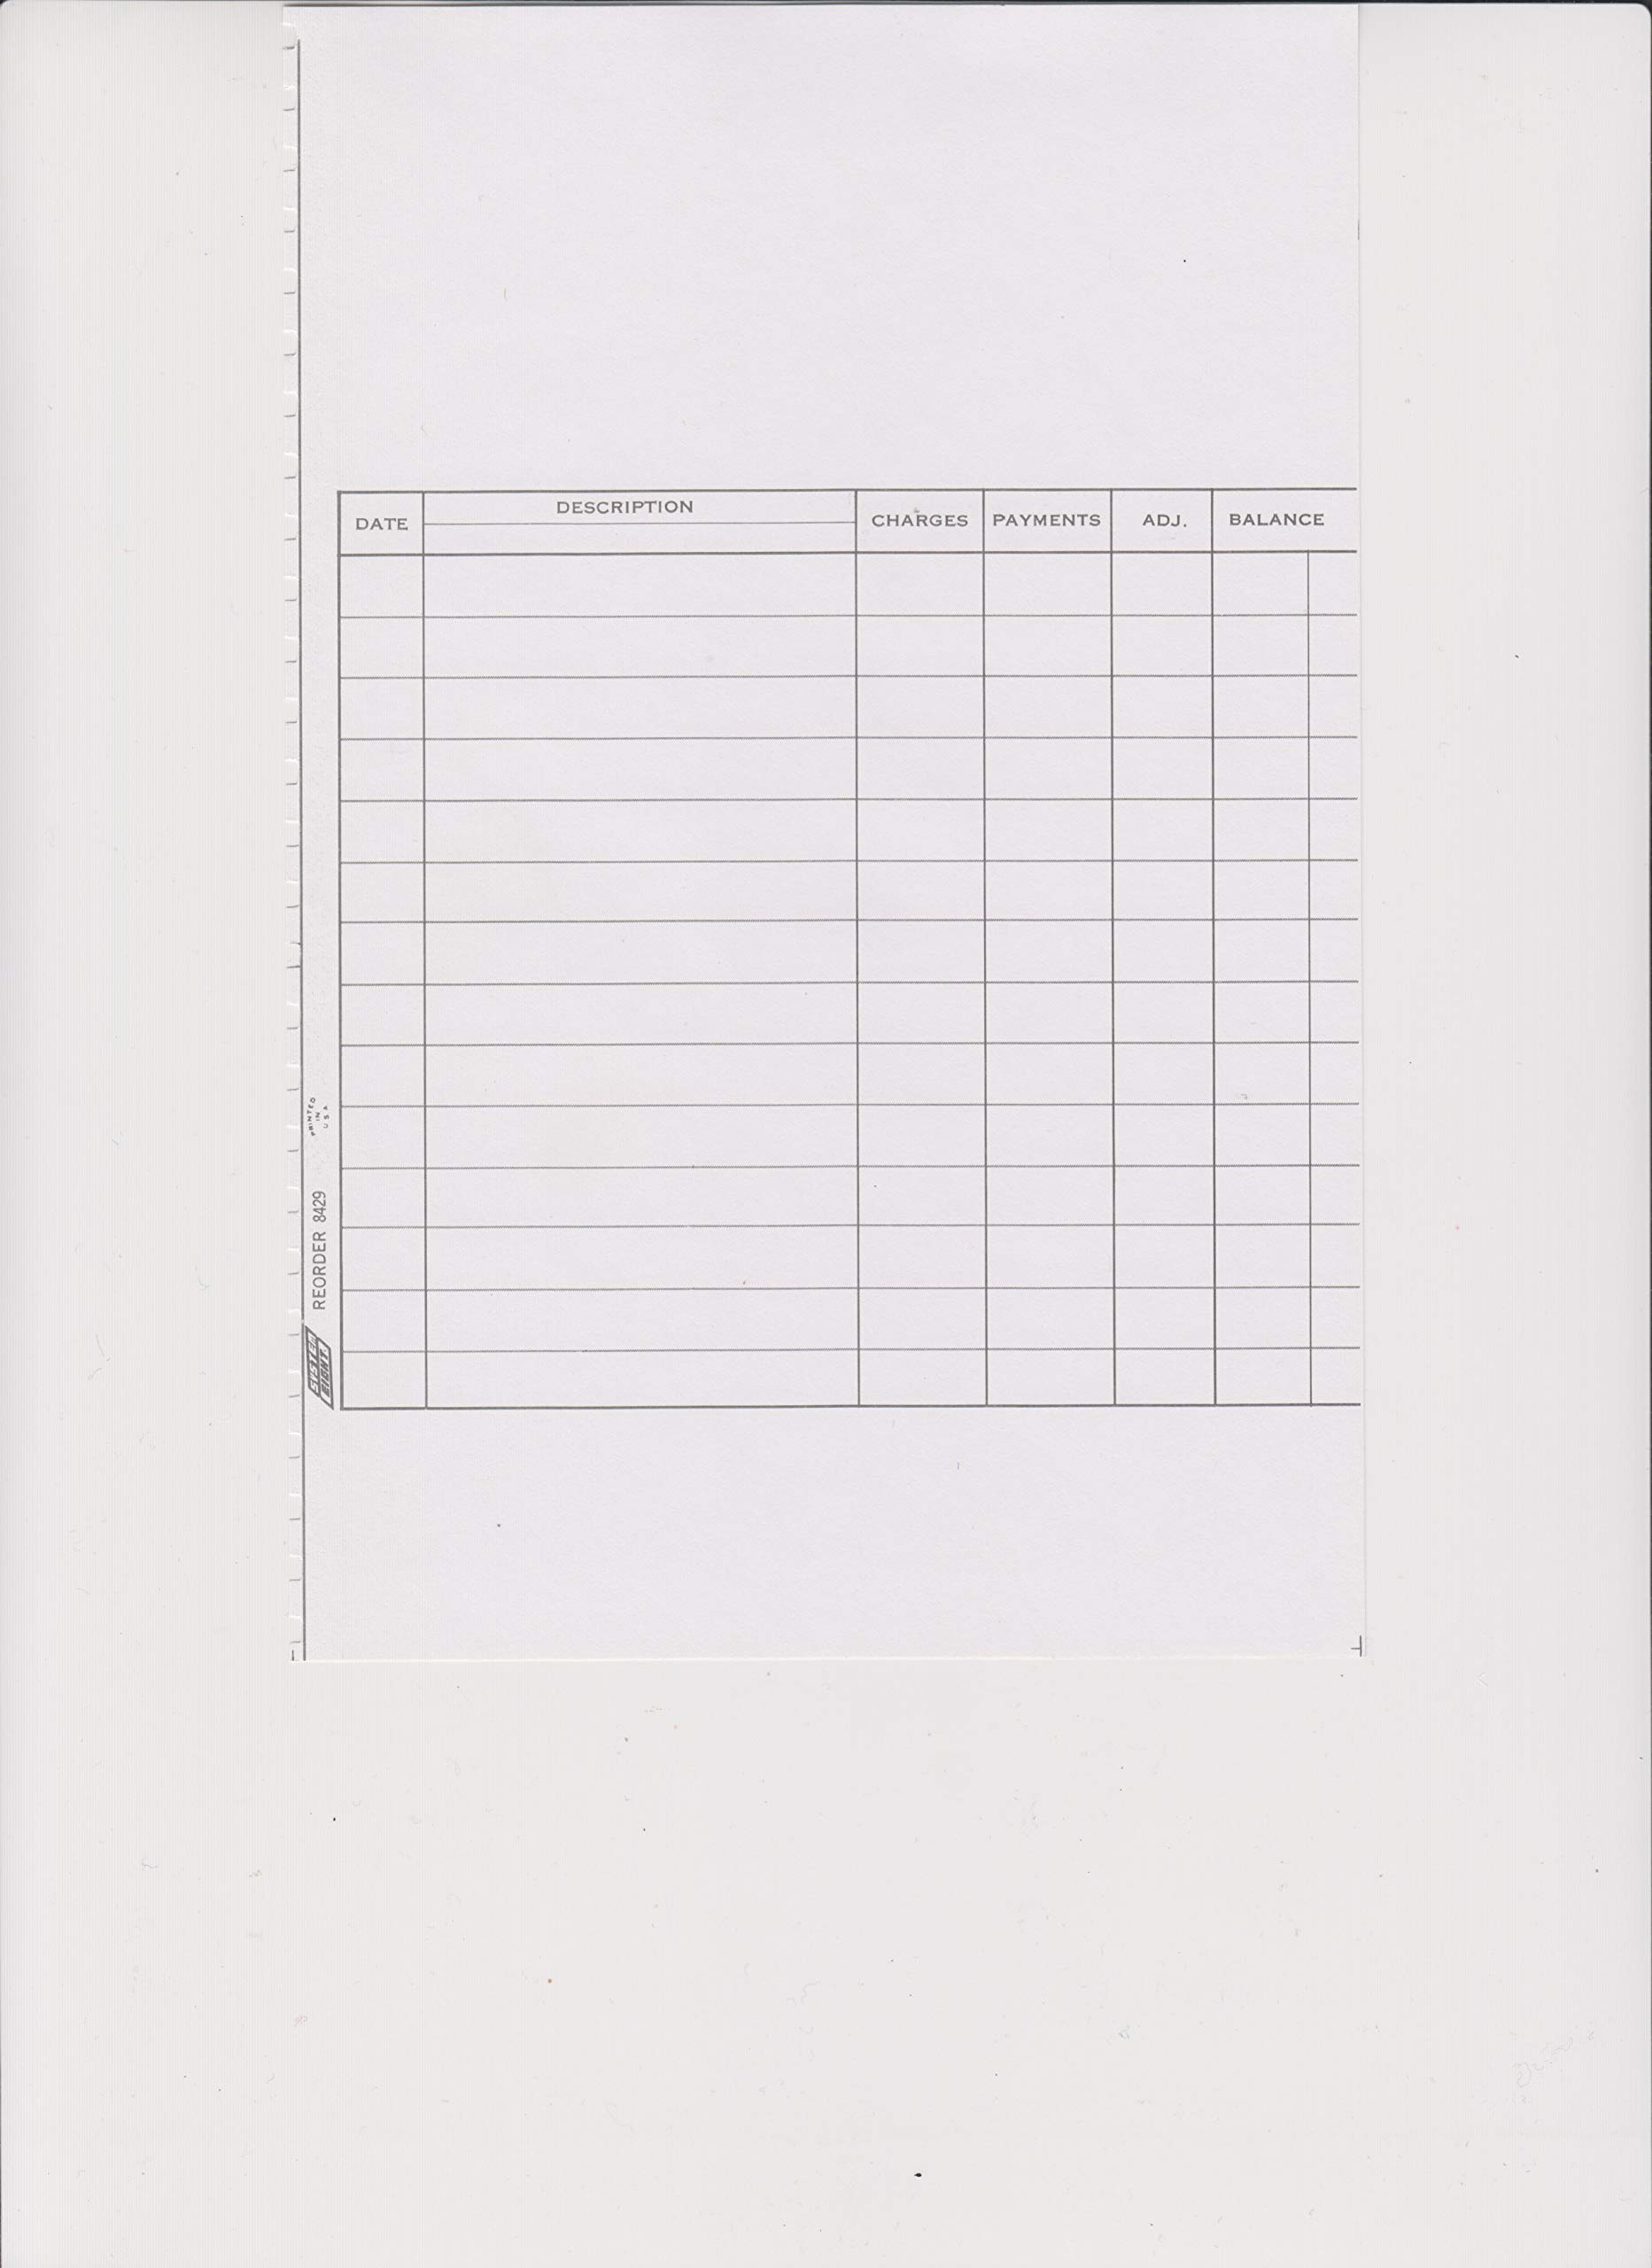 Plain Photocopy Ledger (200) by MyLaserChecks (Image #1)